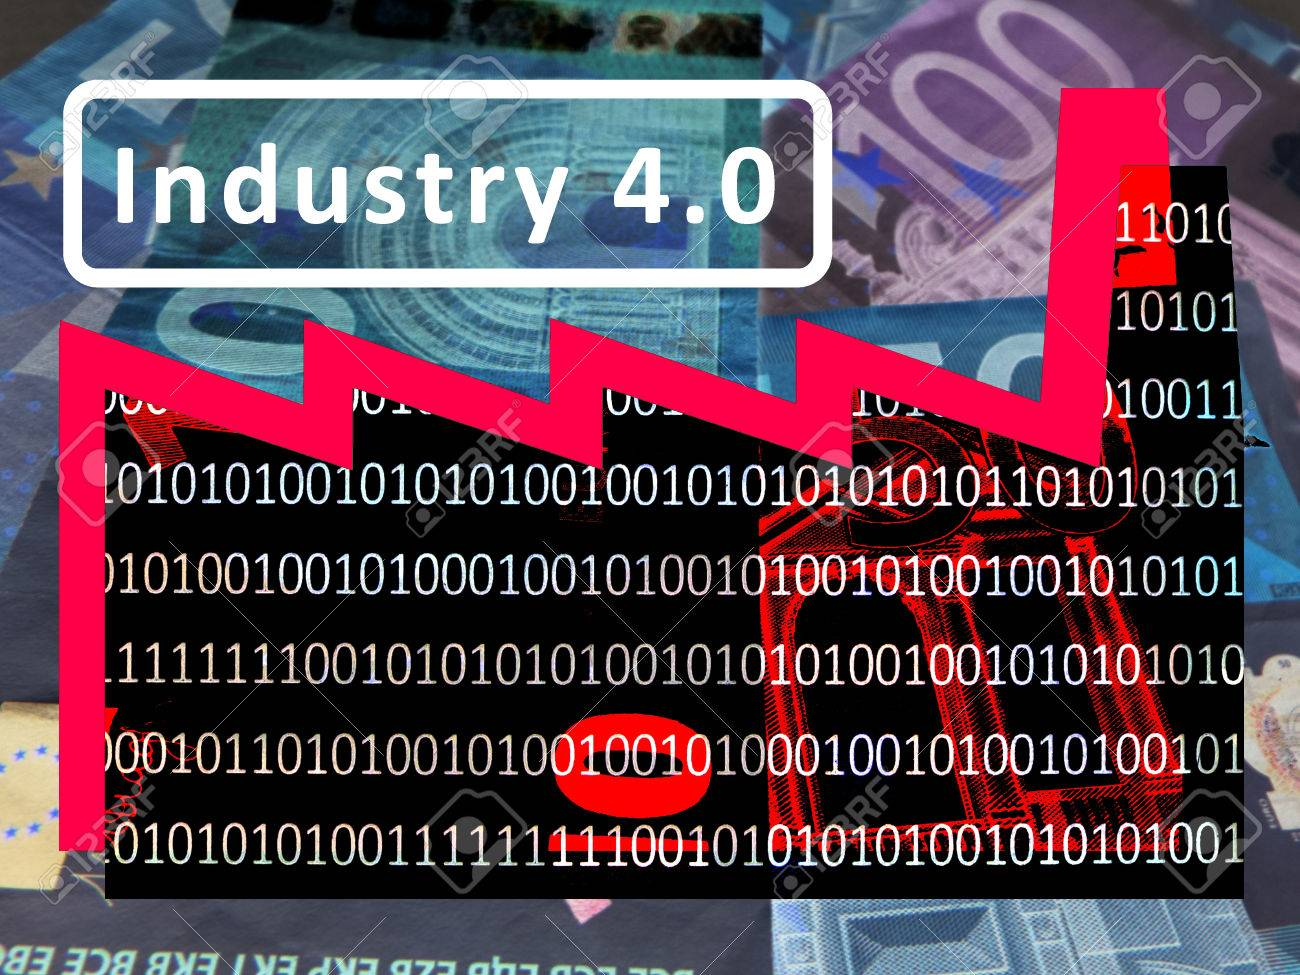 """Industry 4.0: The working world of the future â € """"The symbol of a factory against the background of euro notes. The roof section signal a rising exchange rate. Inscription: Industry 4.0 (International version) - 77000301"""